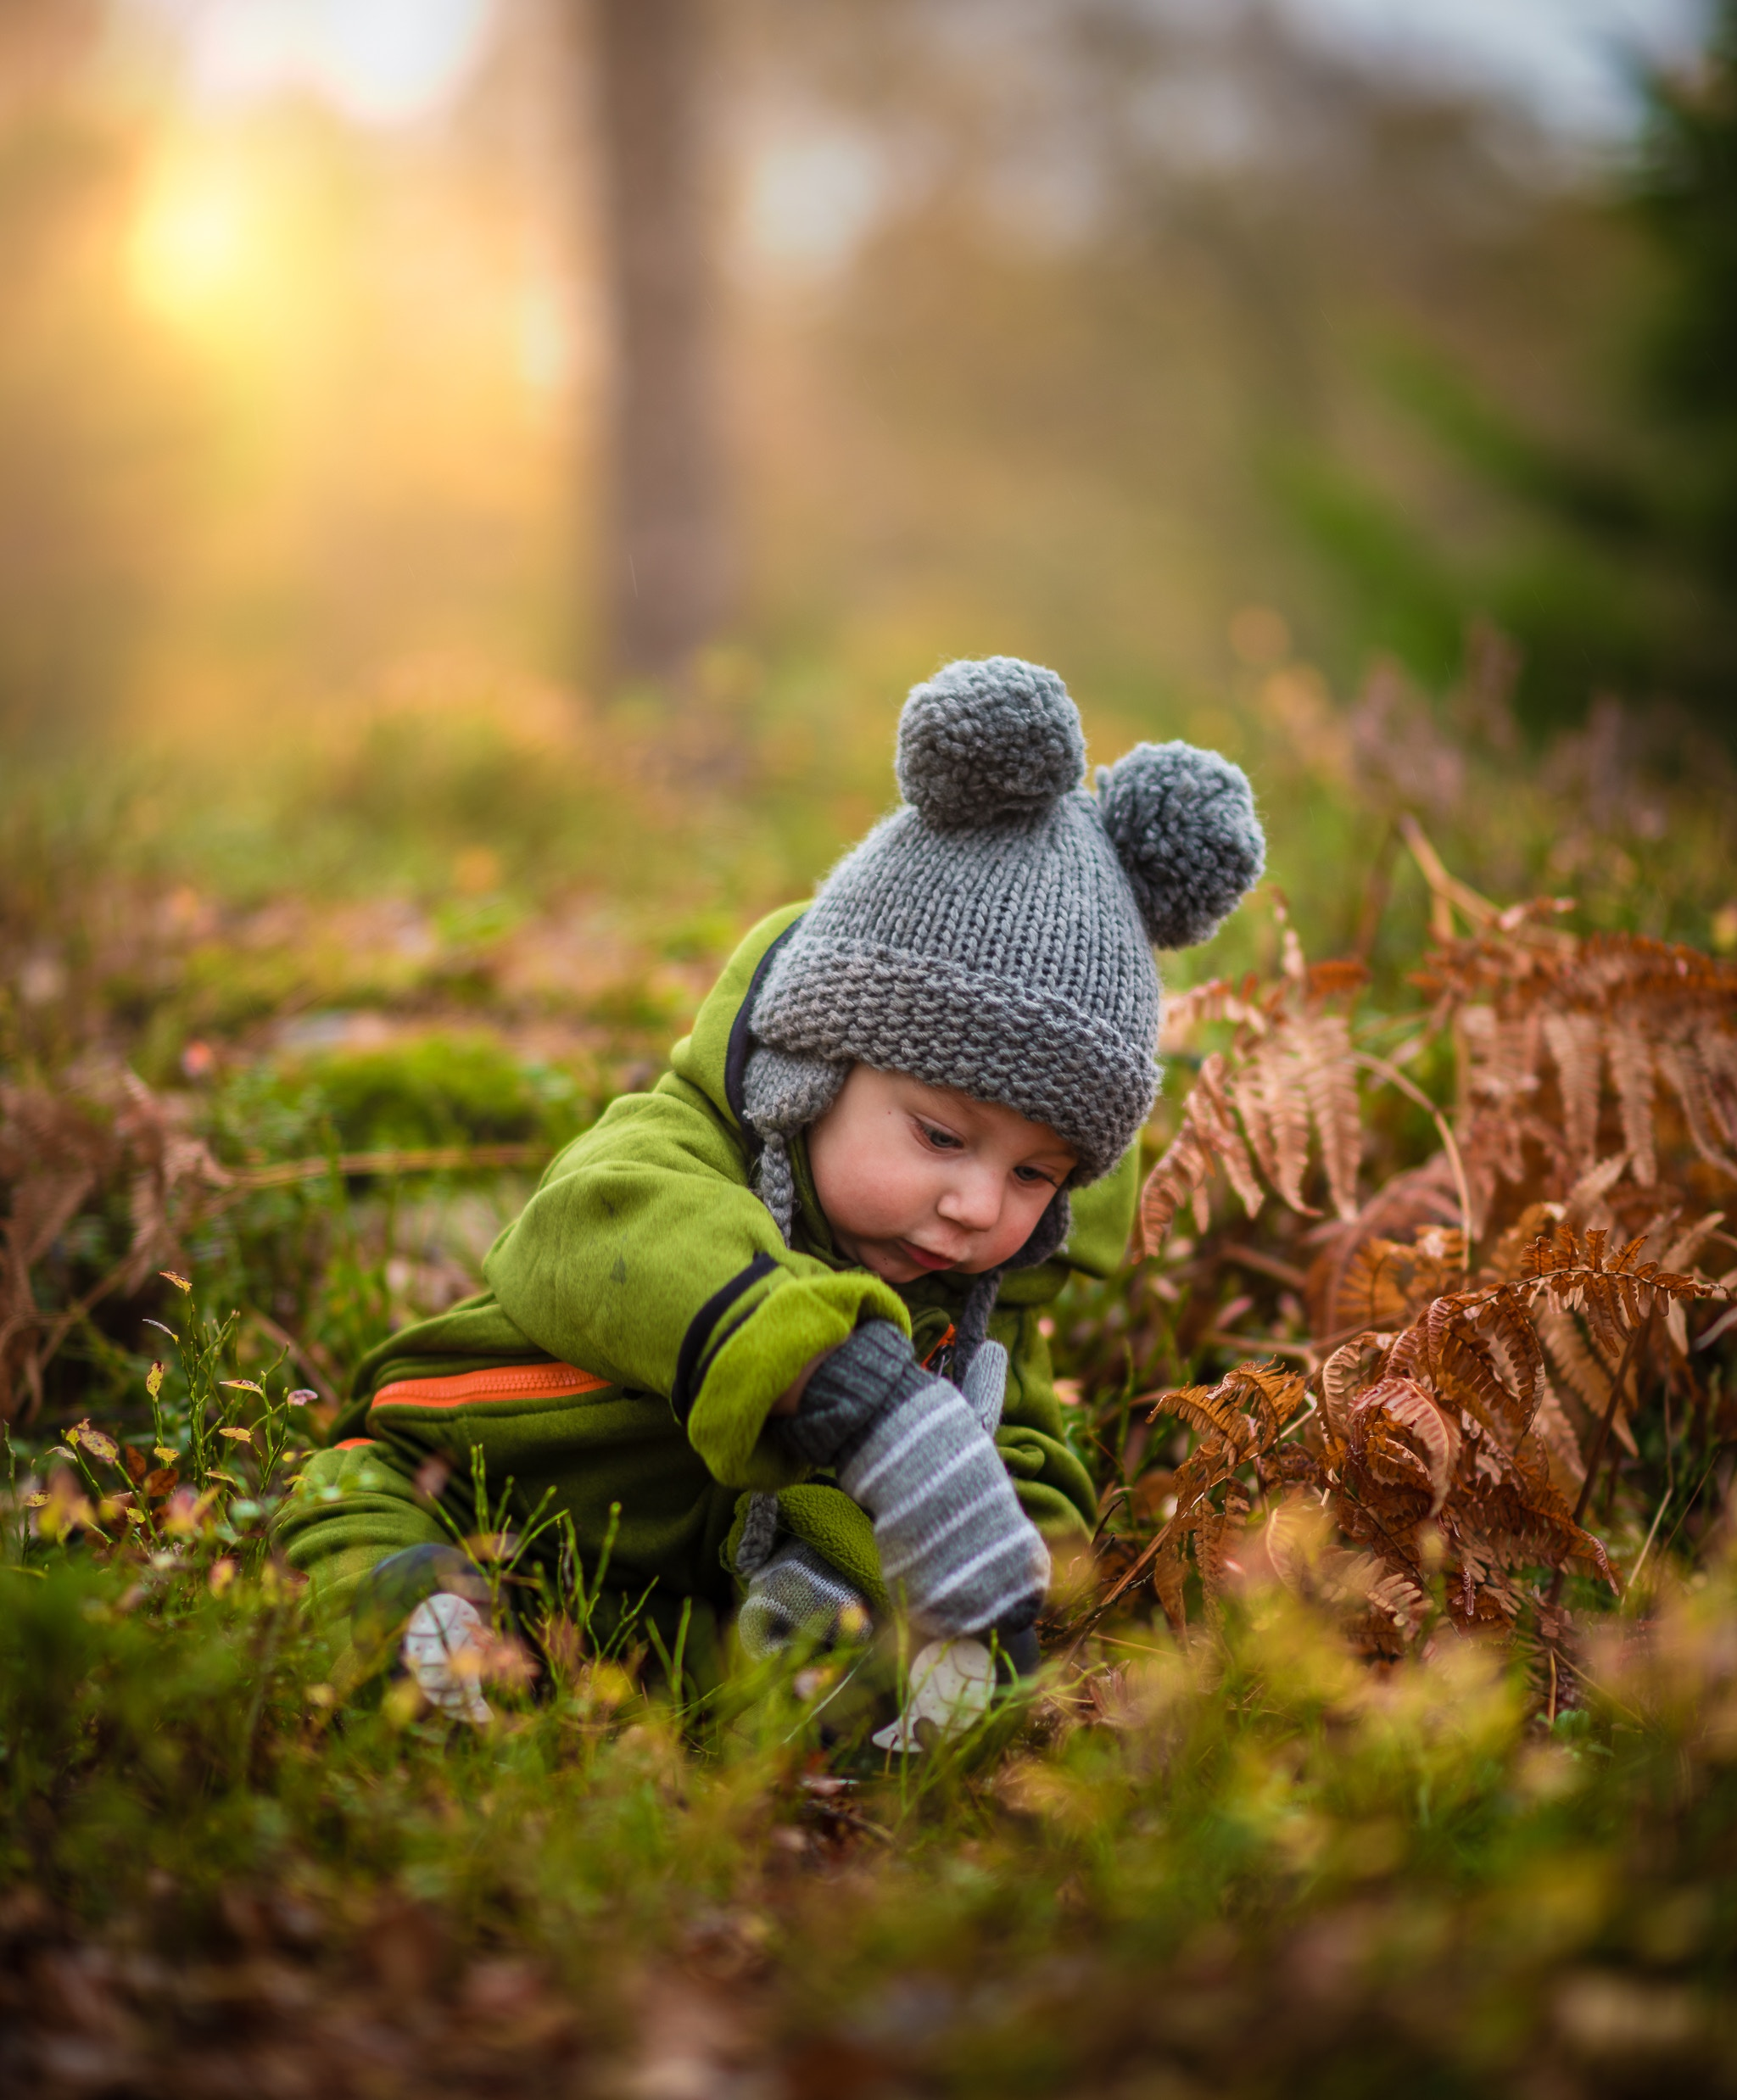 child-play-in-leaves-winter-nz-ece